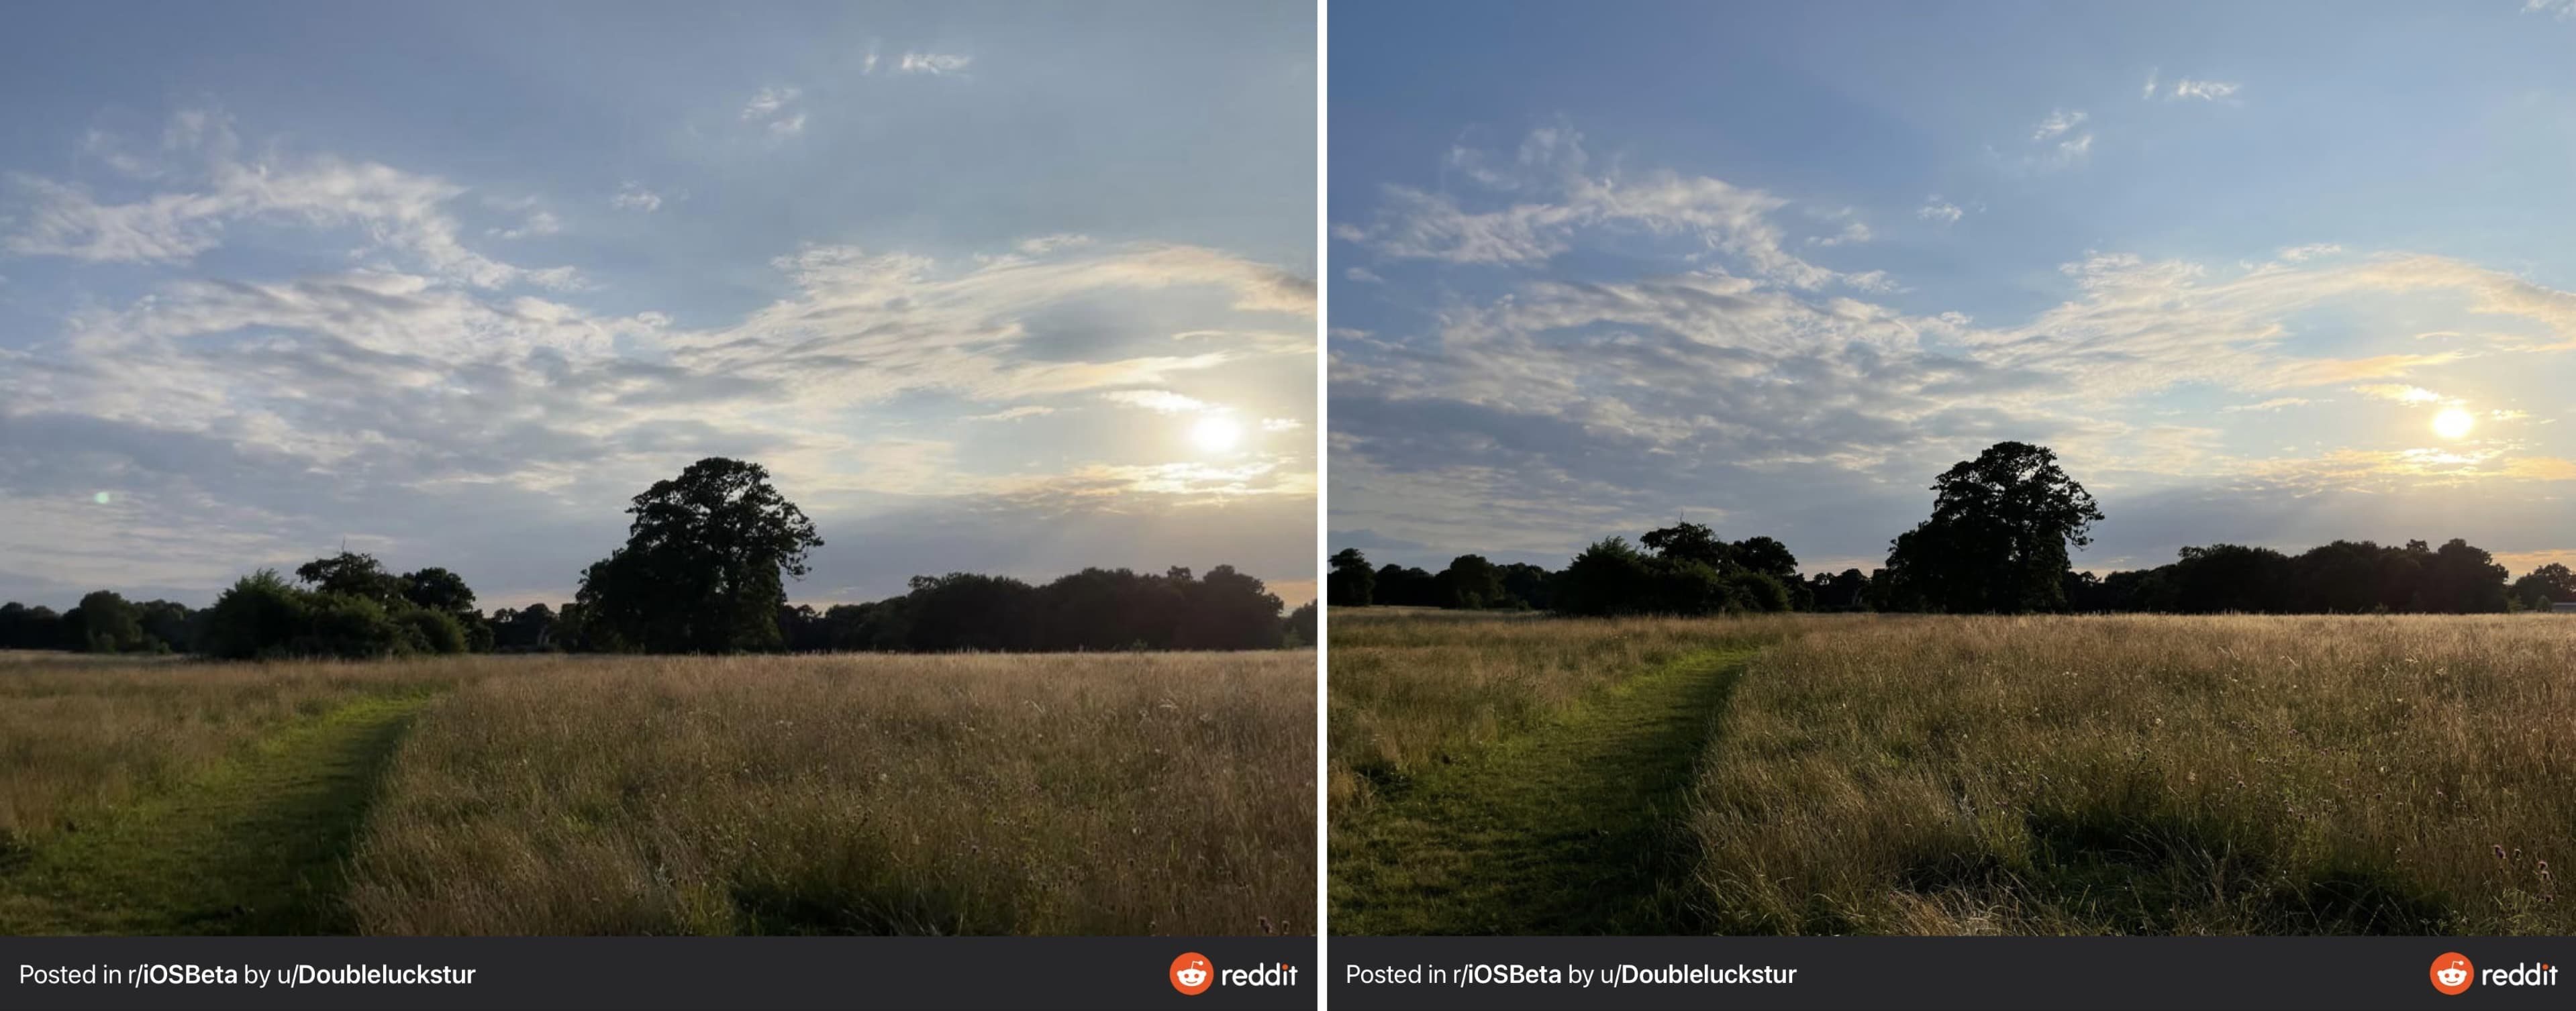 iOS 15 automatically removes lens flare in iPhone photos